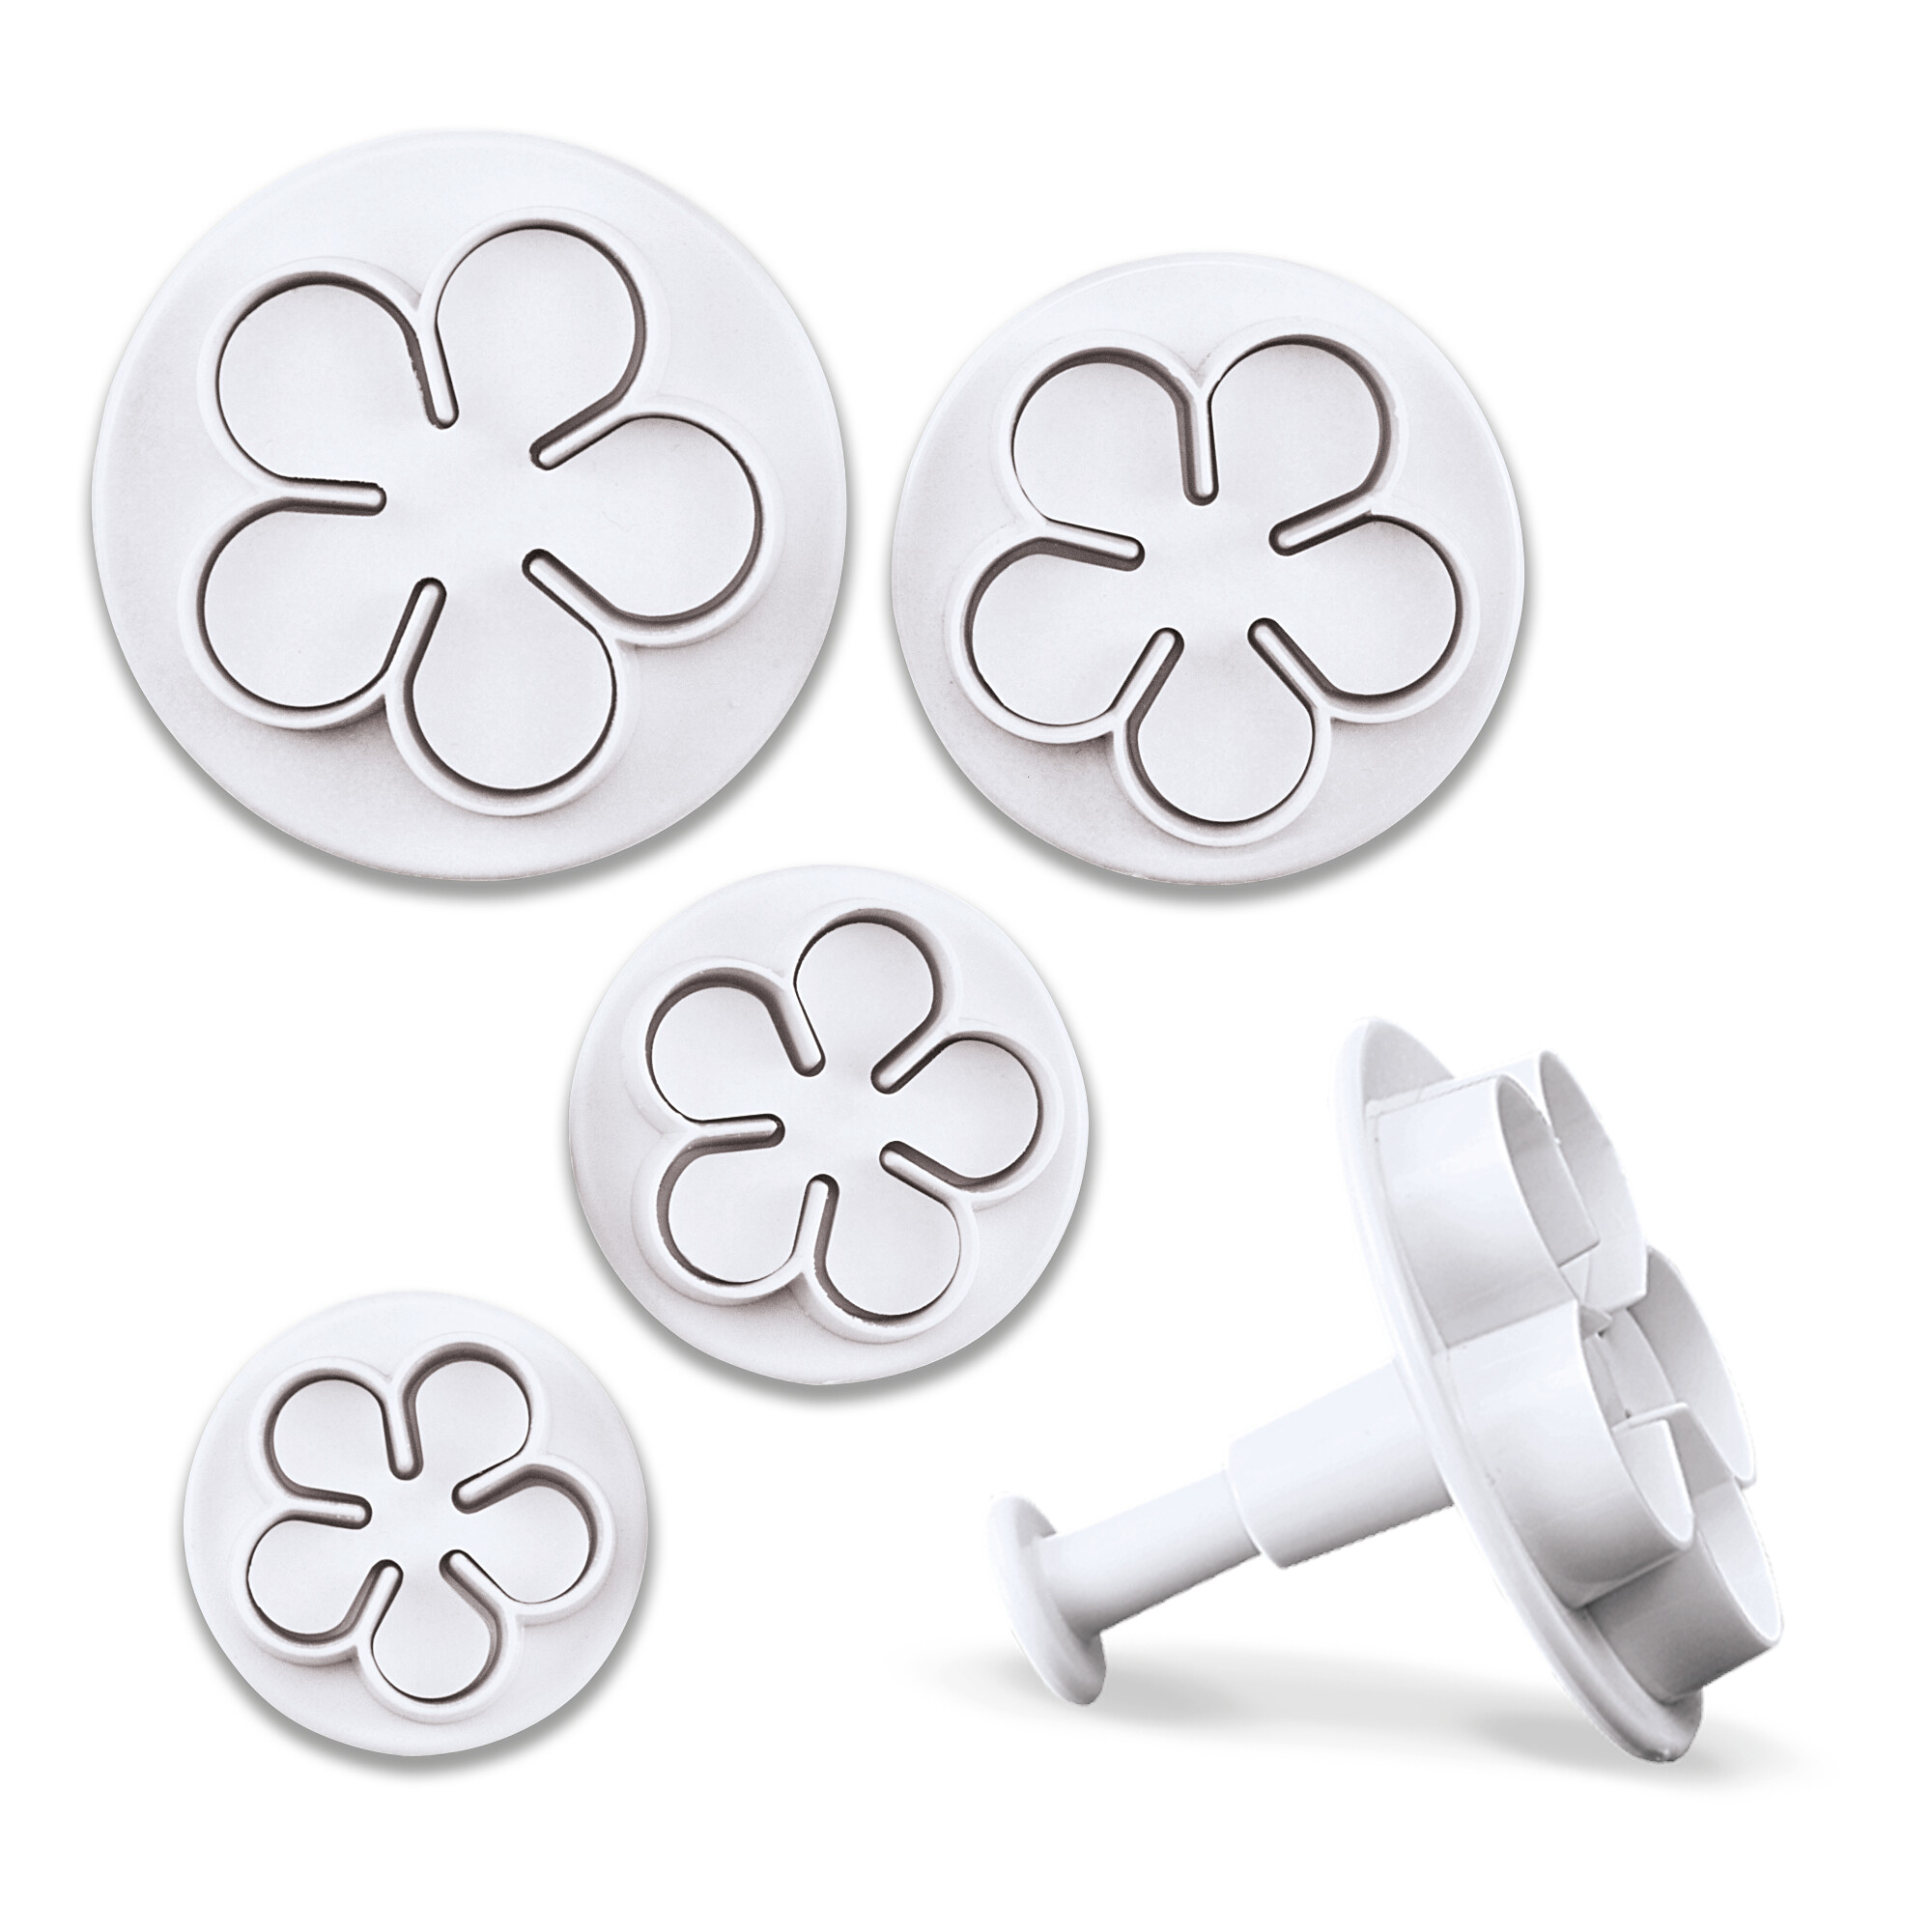 Professional cutter with ejector - Roses & Flowers - Set, 4 parts